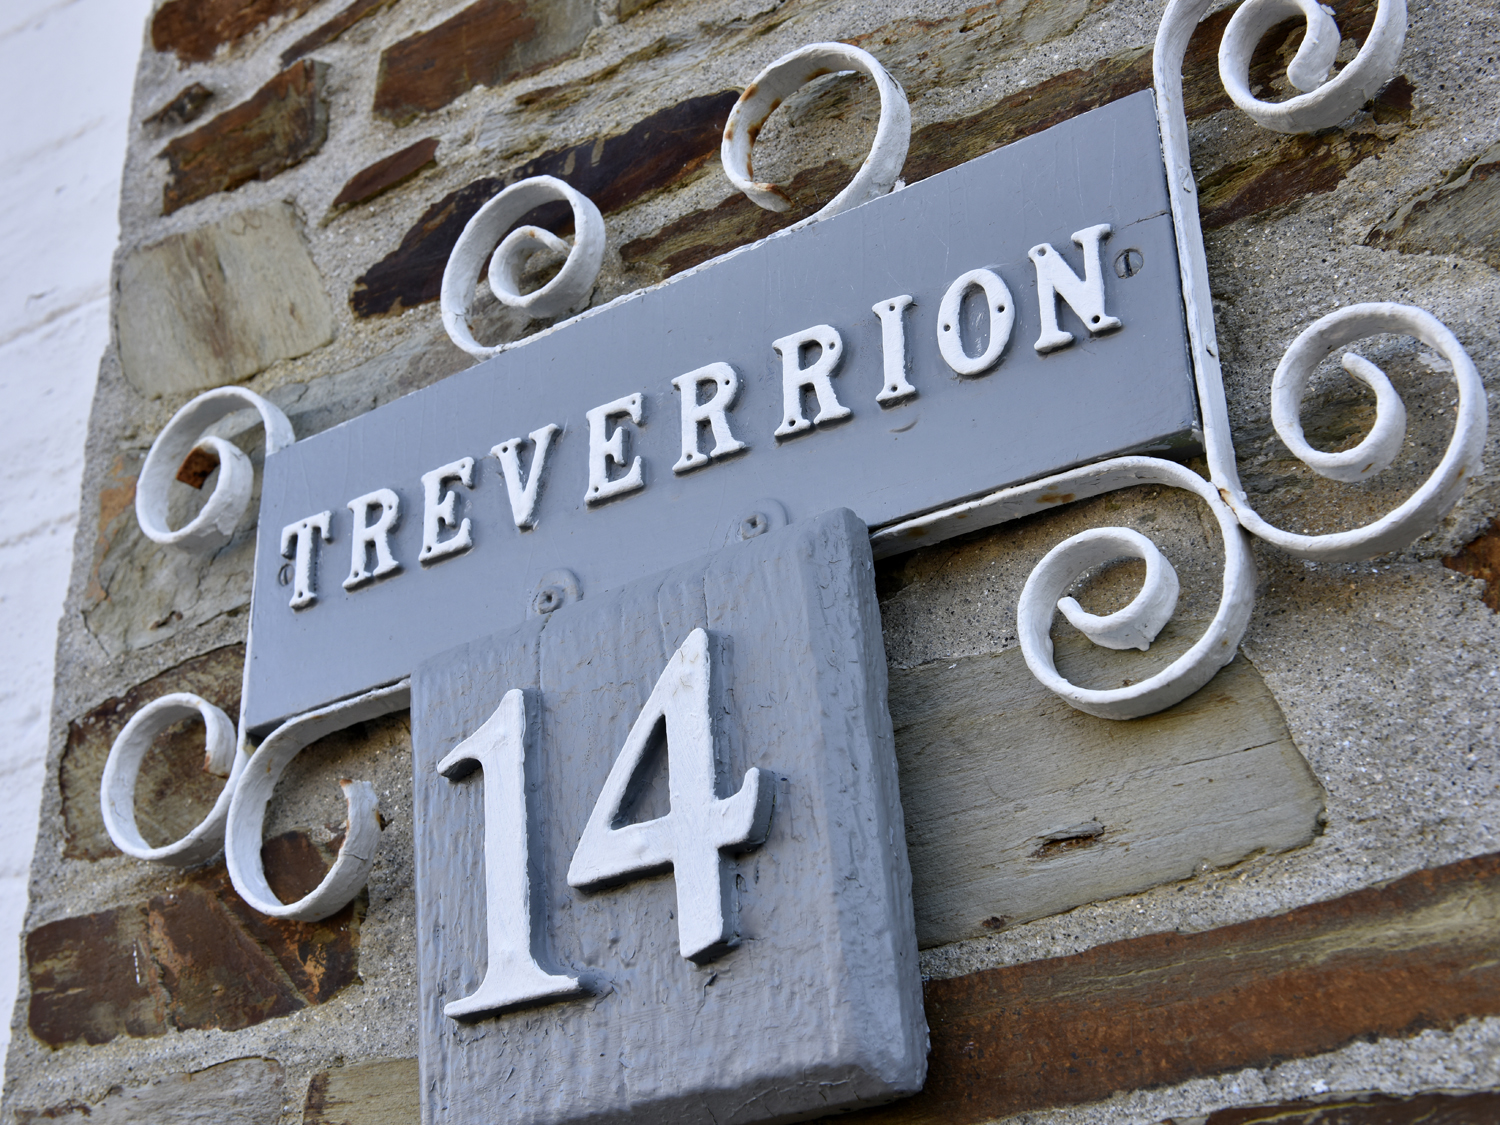 Treverrion Image 16